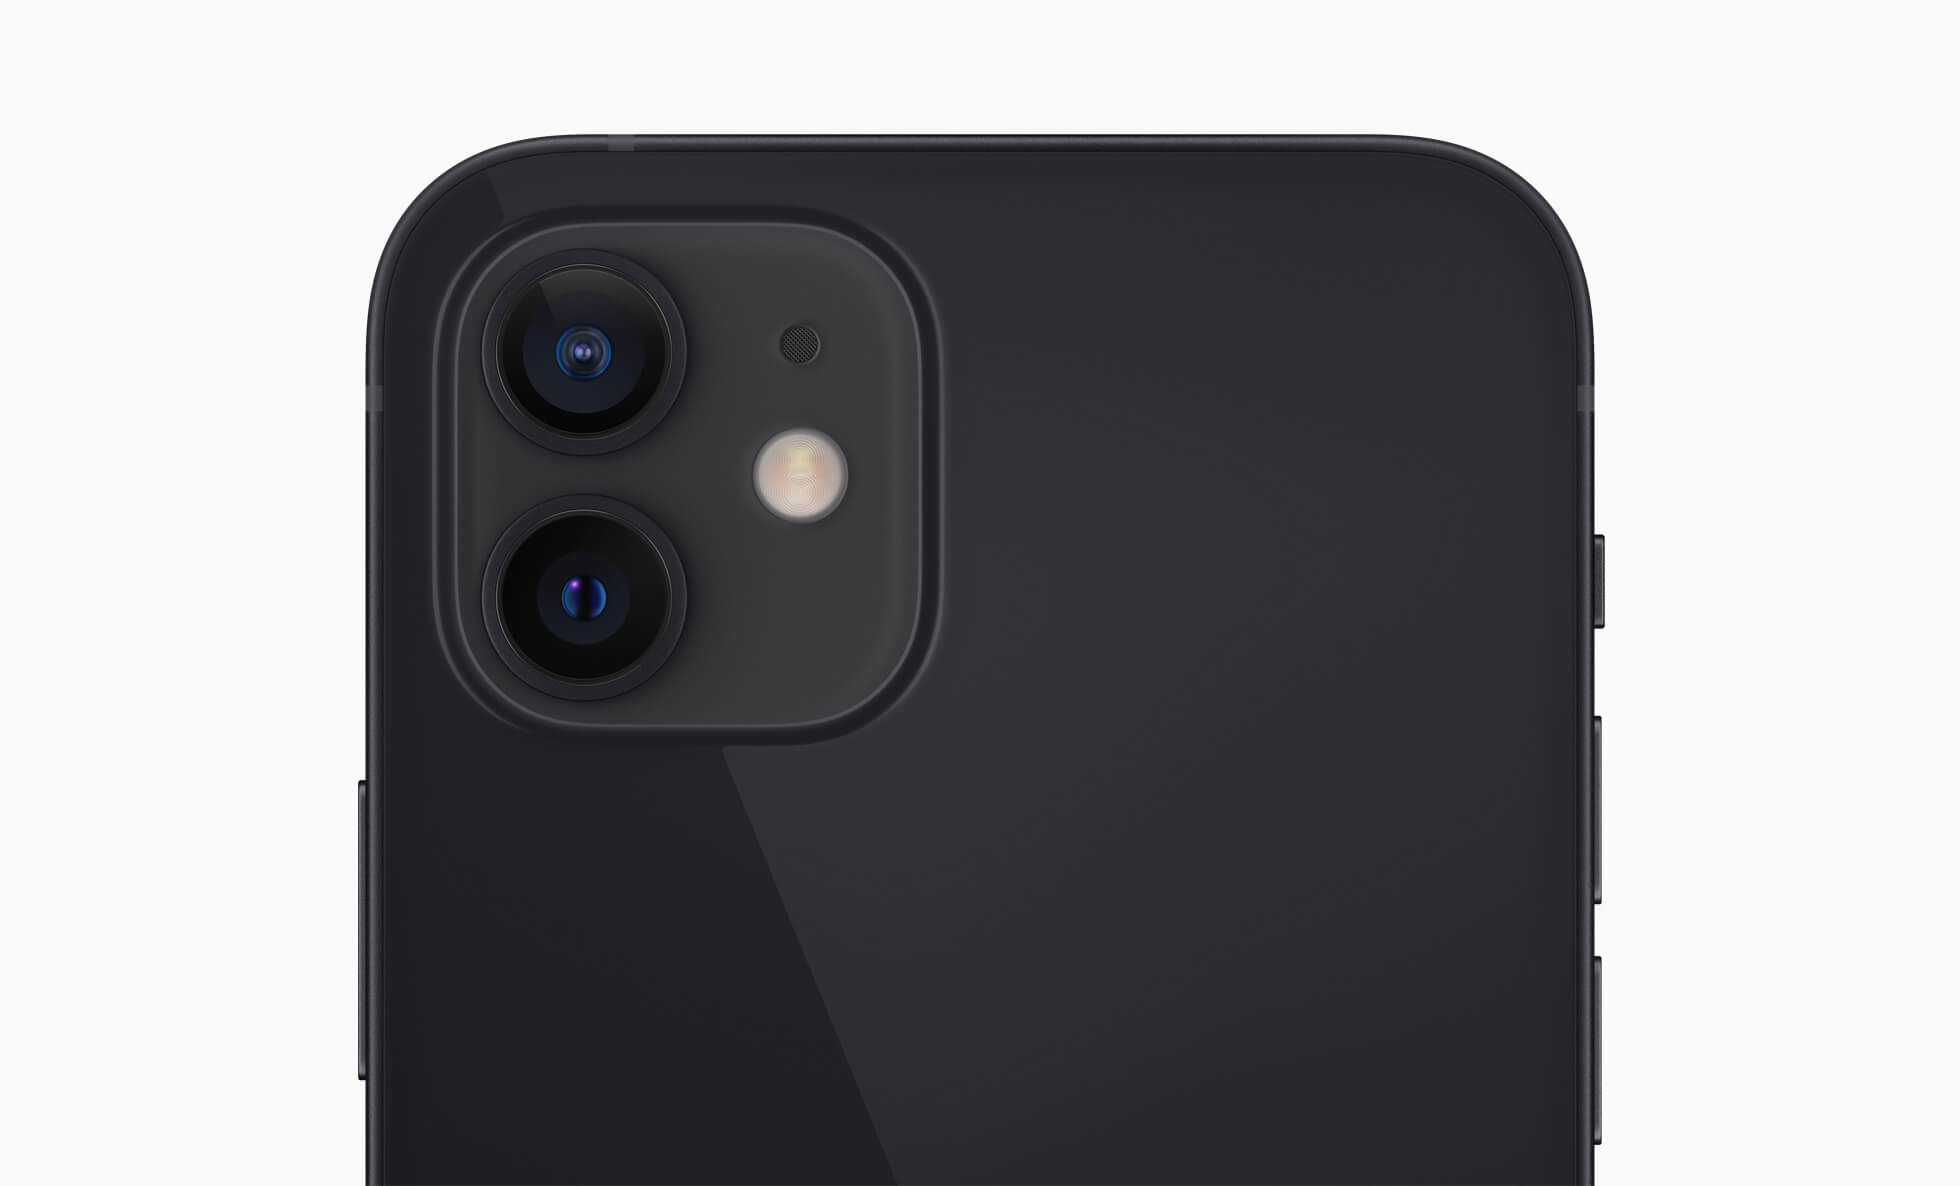 The iPhone 12 dual camera system